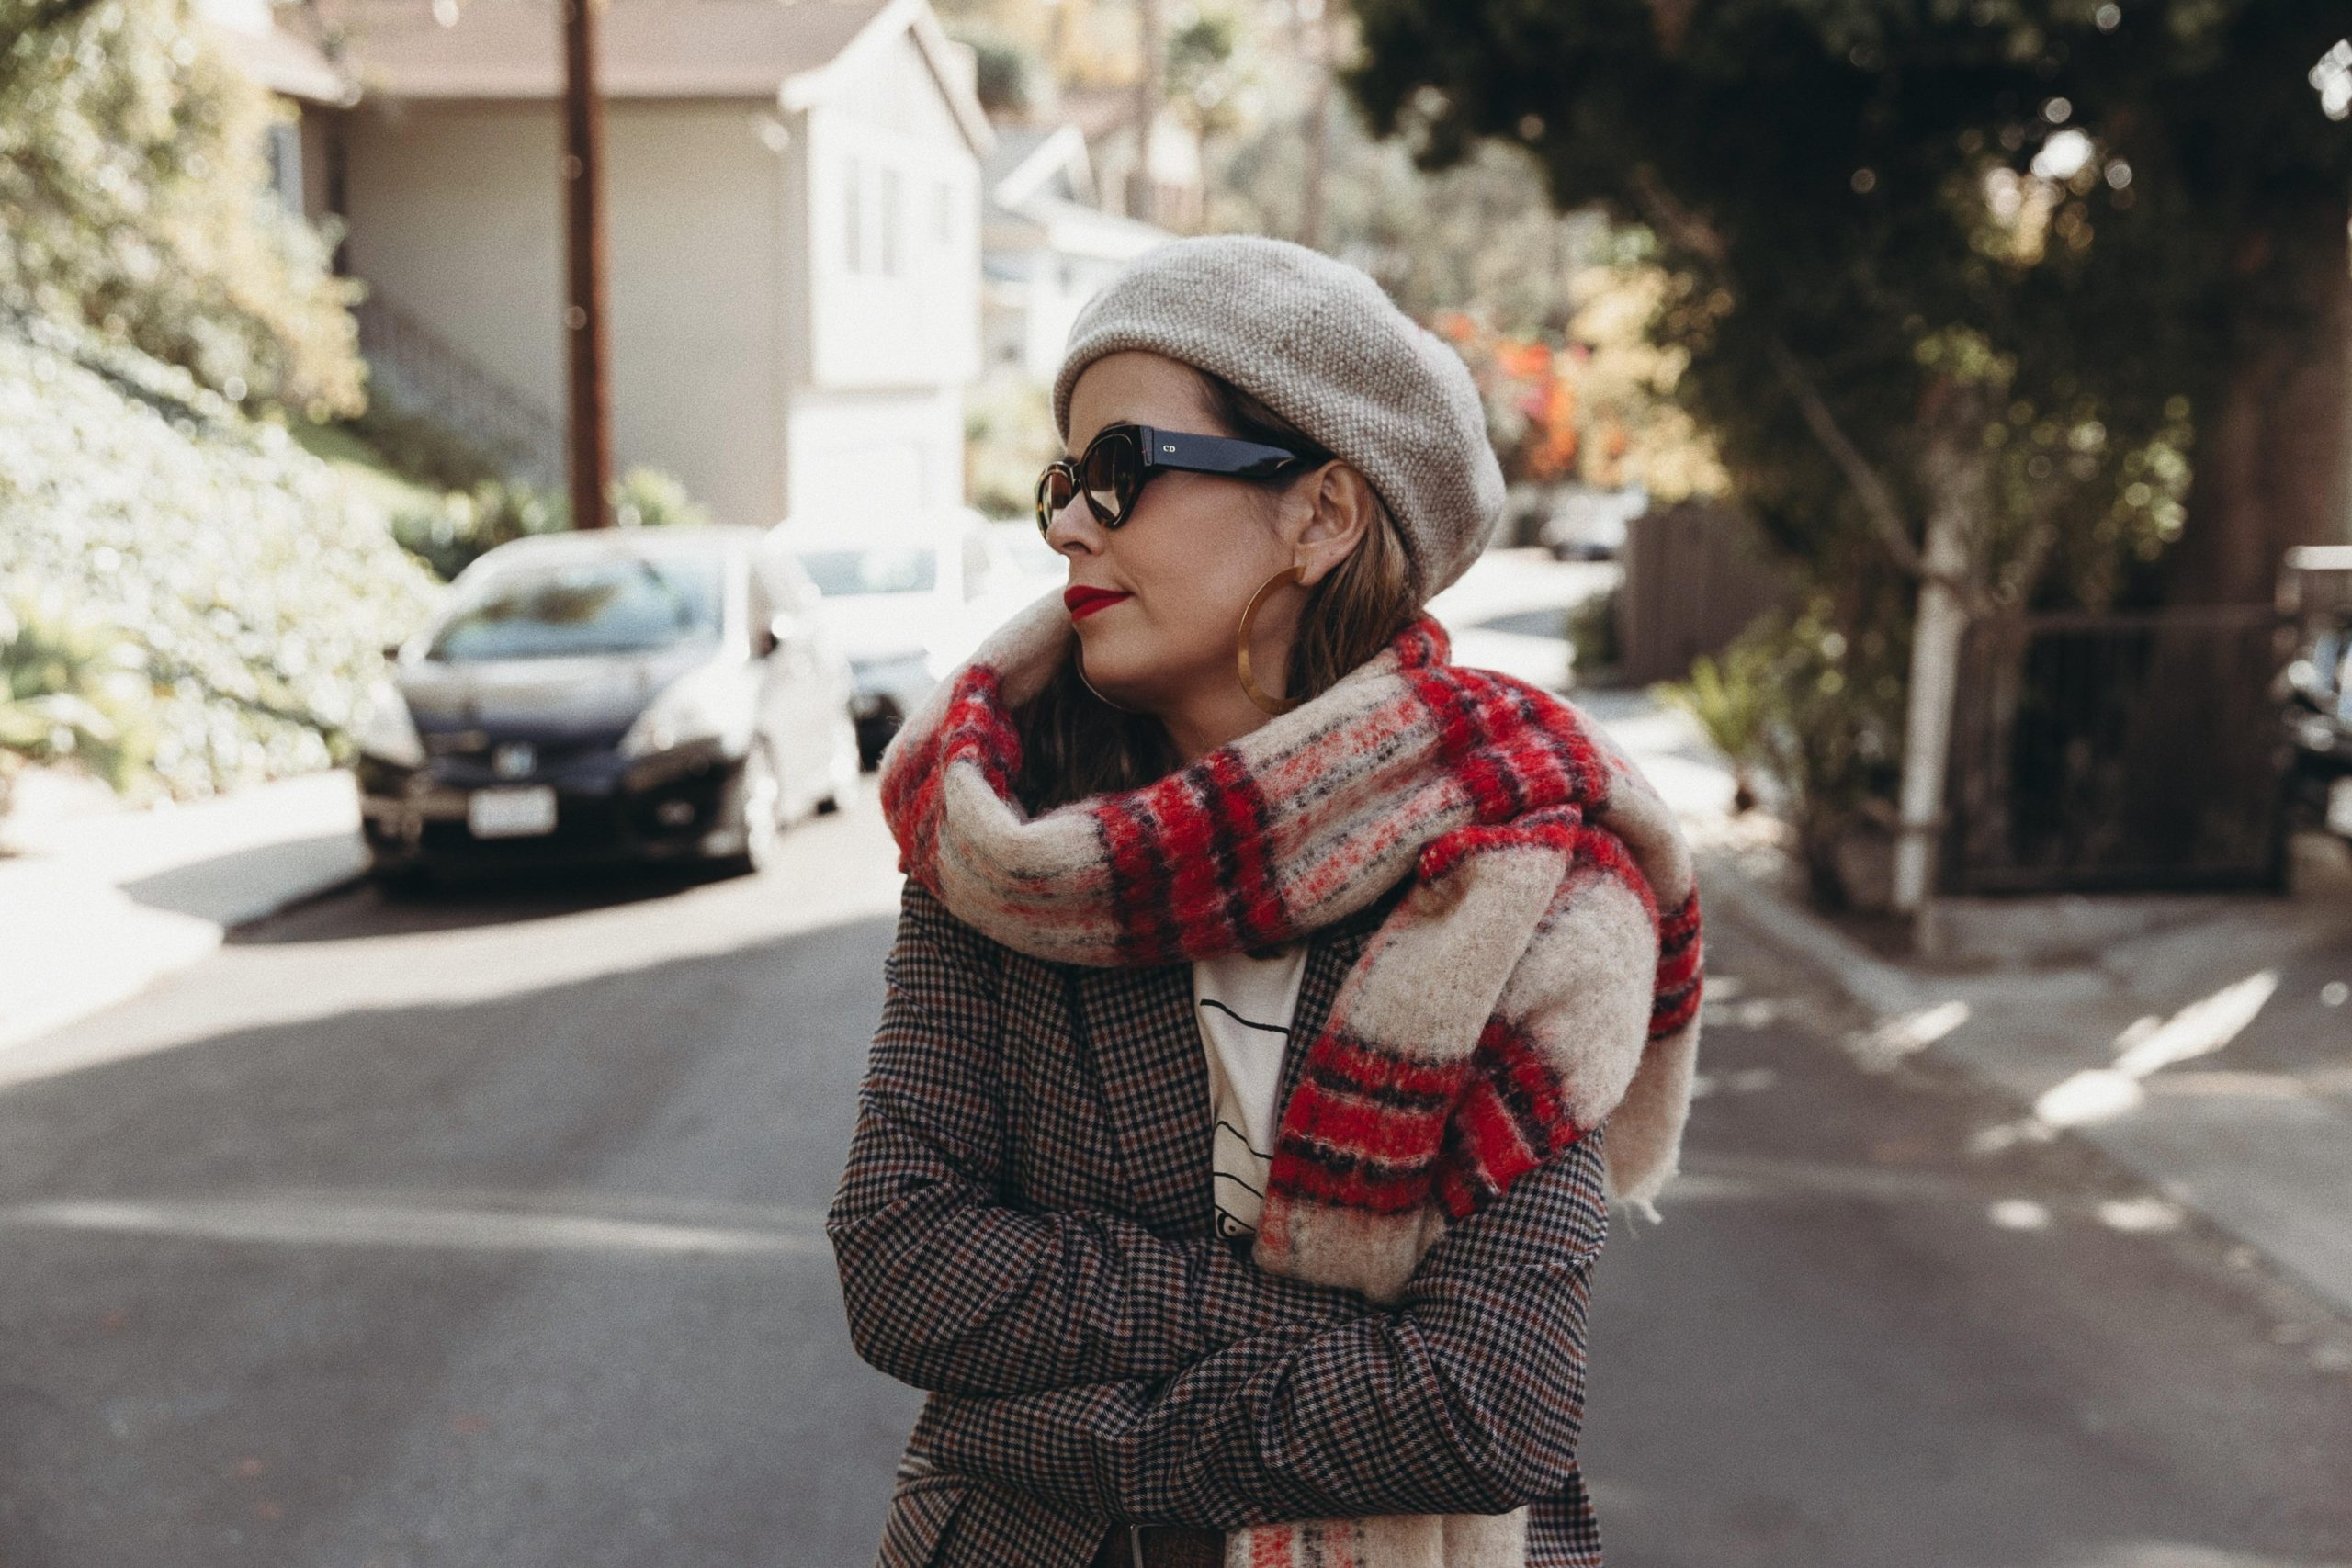 Sara from Collage Vintage wearing a checked suit and wool beret for Black Friday